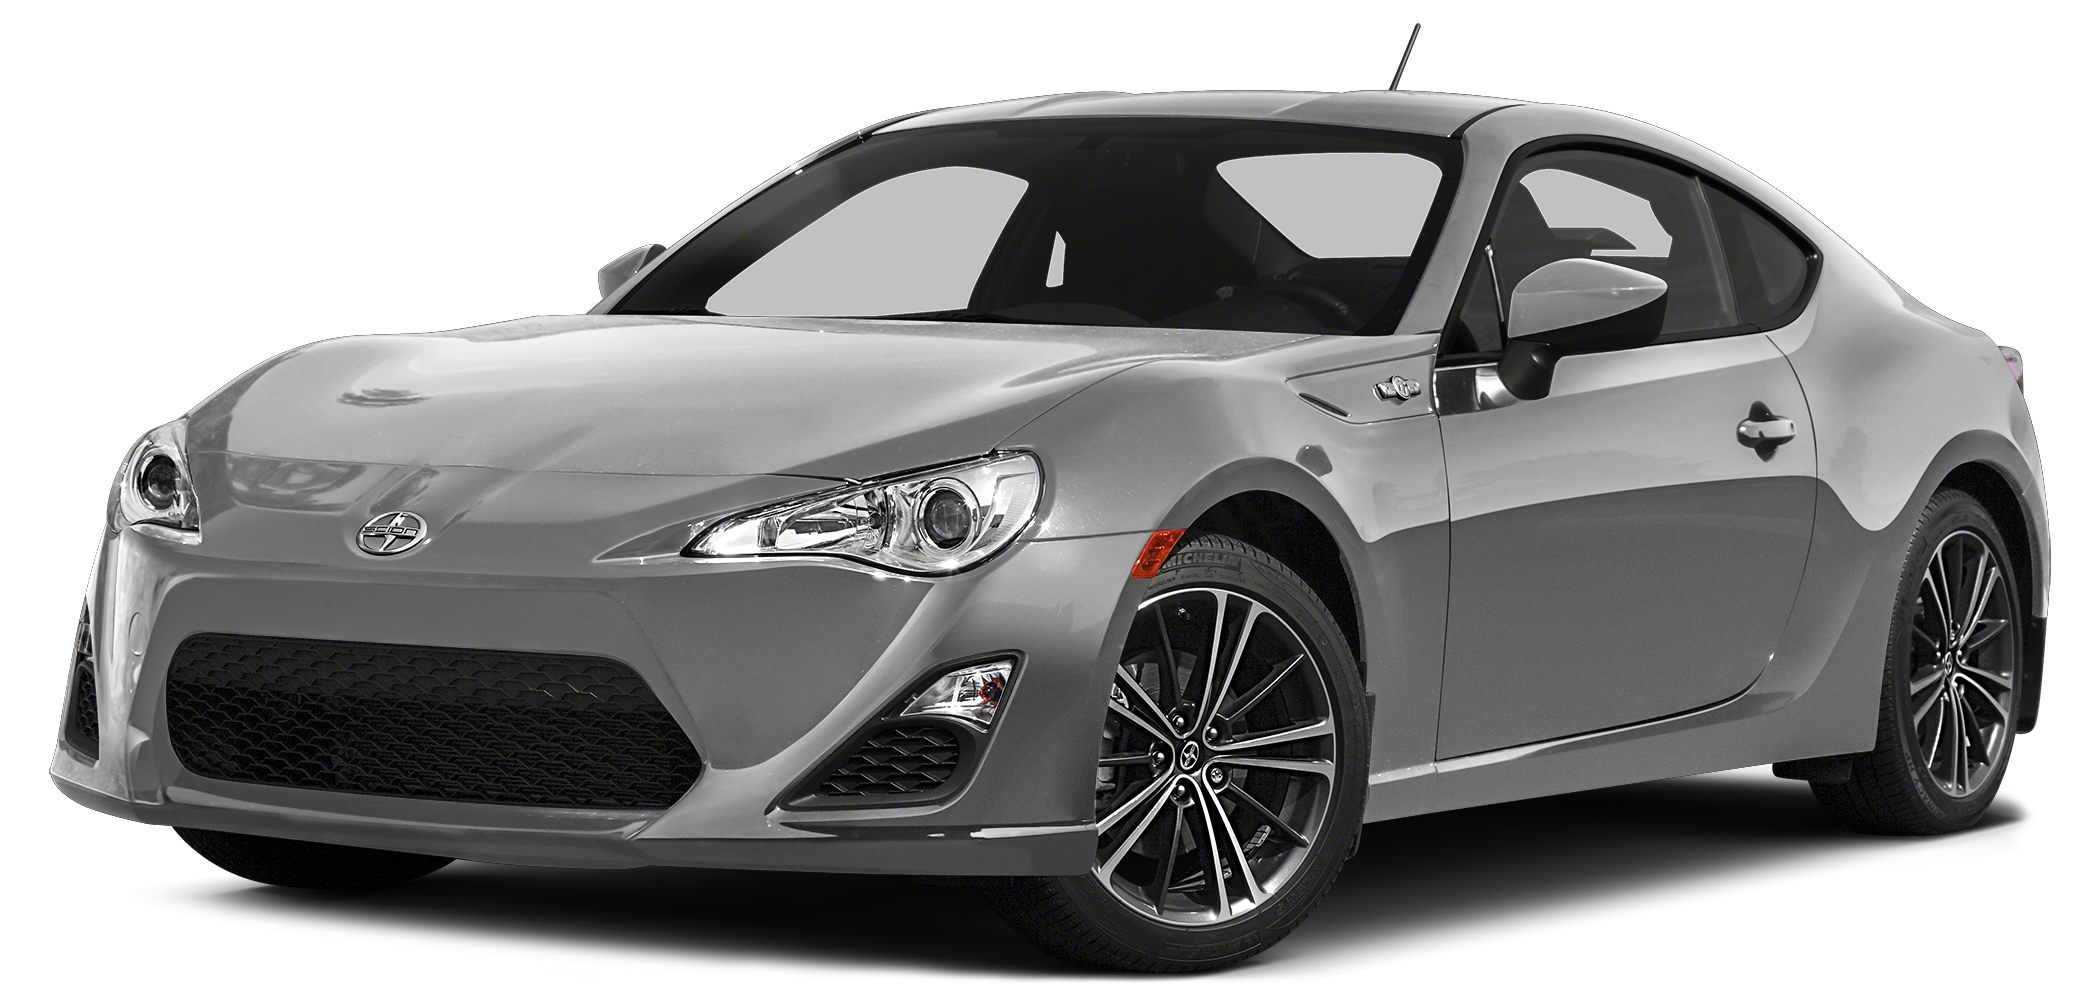 2013 Scion FR-S Base PRICED TO MOVE 400 below Kelley Blue Book FUEL EFFICIENT 30 MPG Hwy22 MPG